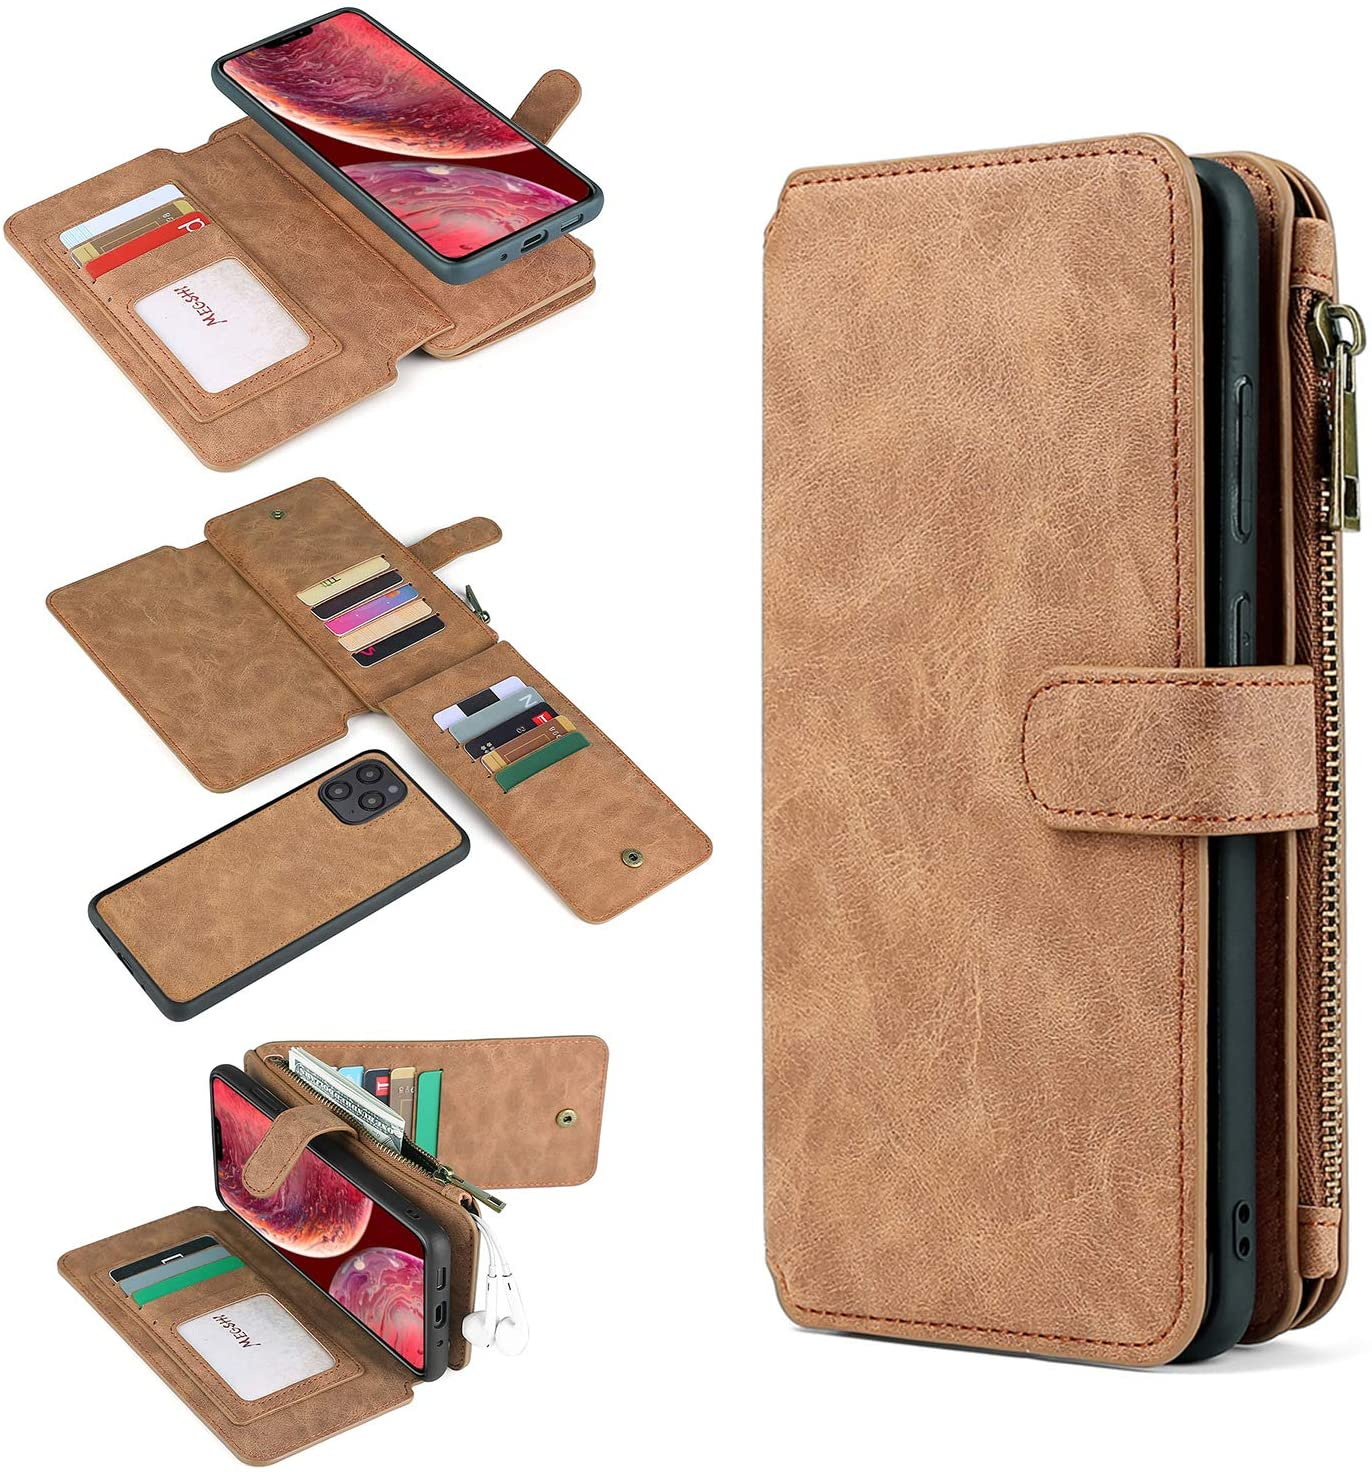 for iPhone 12 Pro/iPhone 12 Wallet Case,with Card Slots & Zipper Retro PU Leather Multi-Function Detachable Magnetic Wallet Case Cover(iPhone 12 Pro/12 6.1